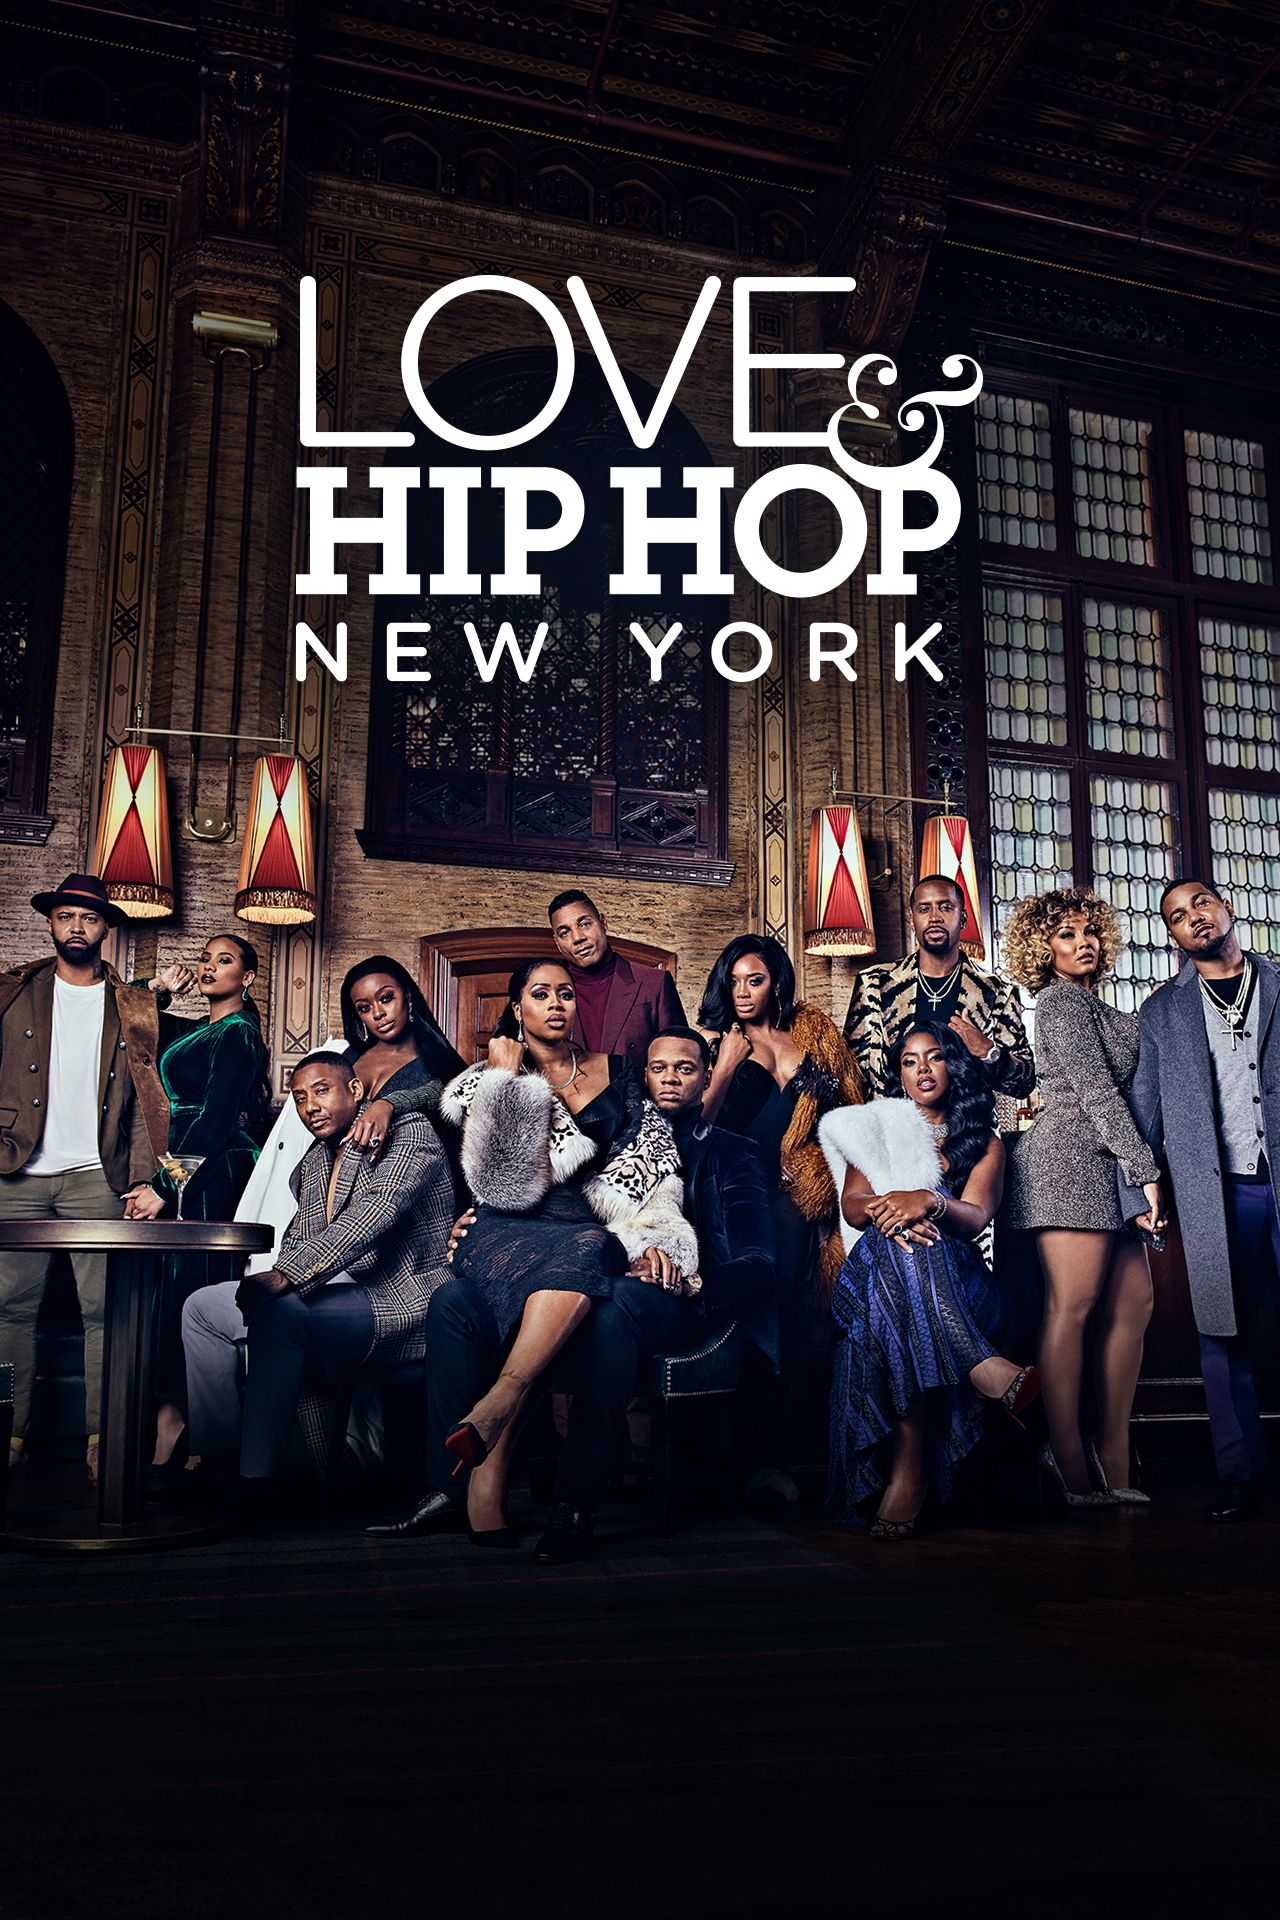 Love & Hip Hop New York TV Series Cast Members | VH1